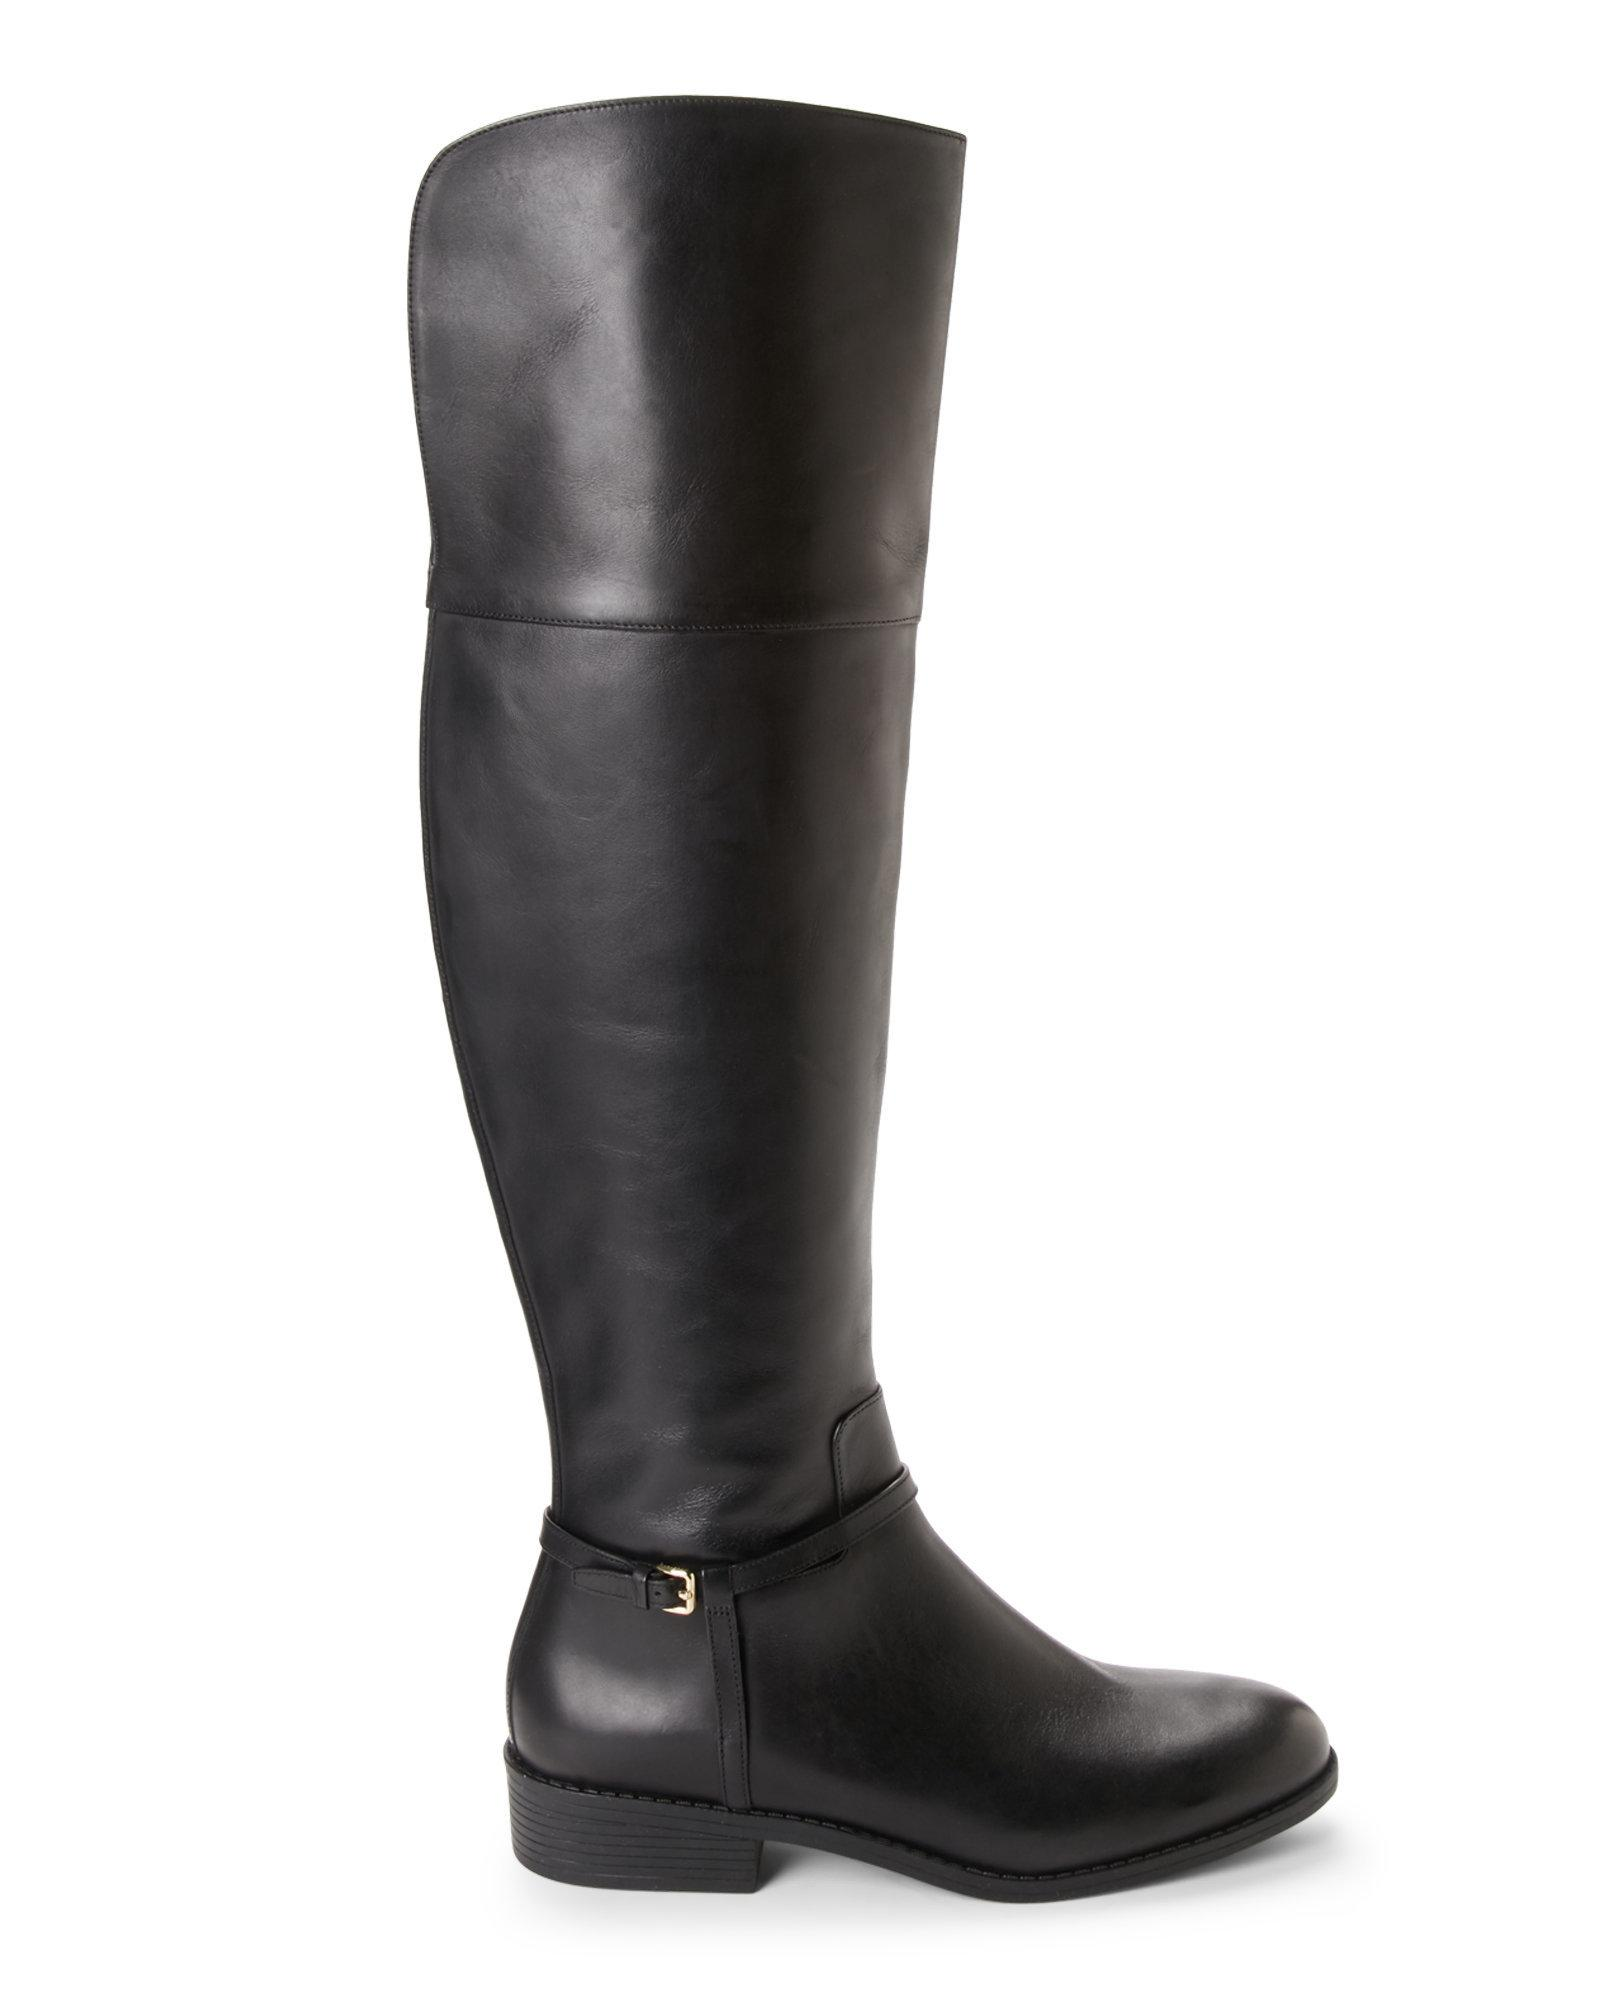 b7ad2d88cc2 Cole Haan Black Valentia Over The Knee Boots in Black - Lyst